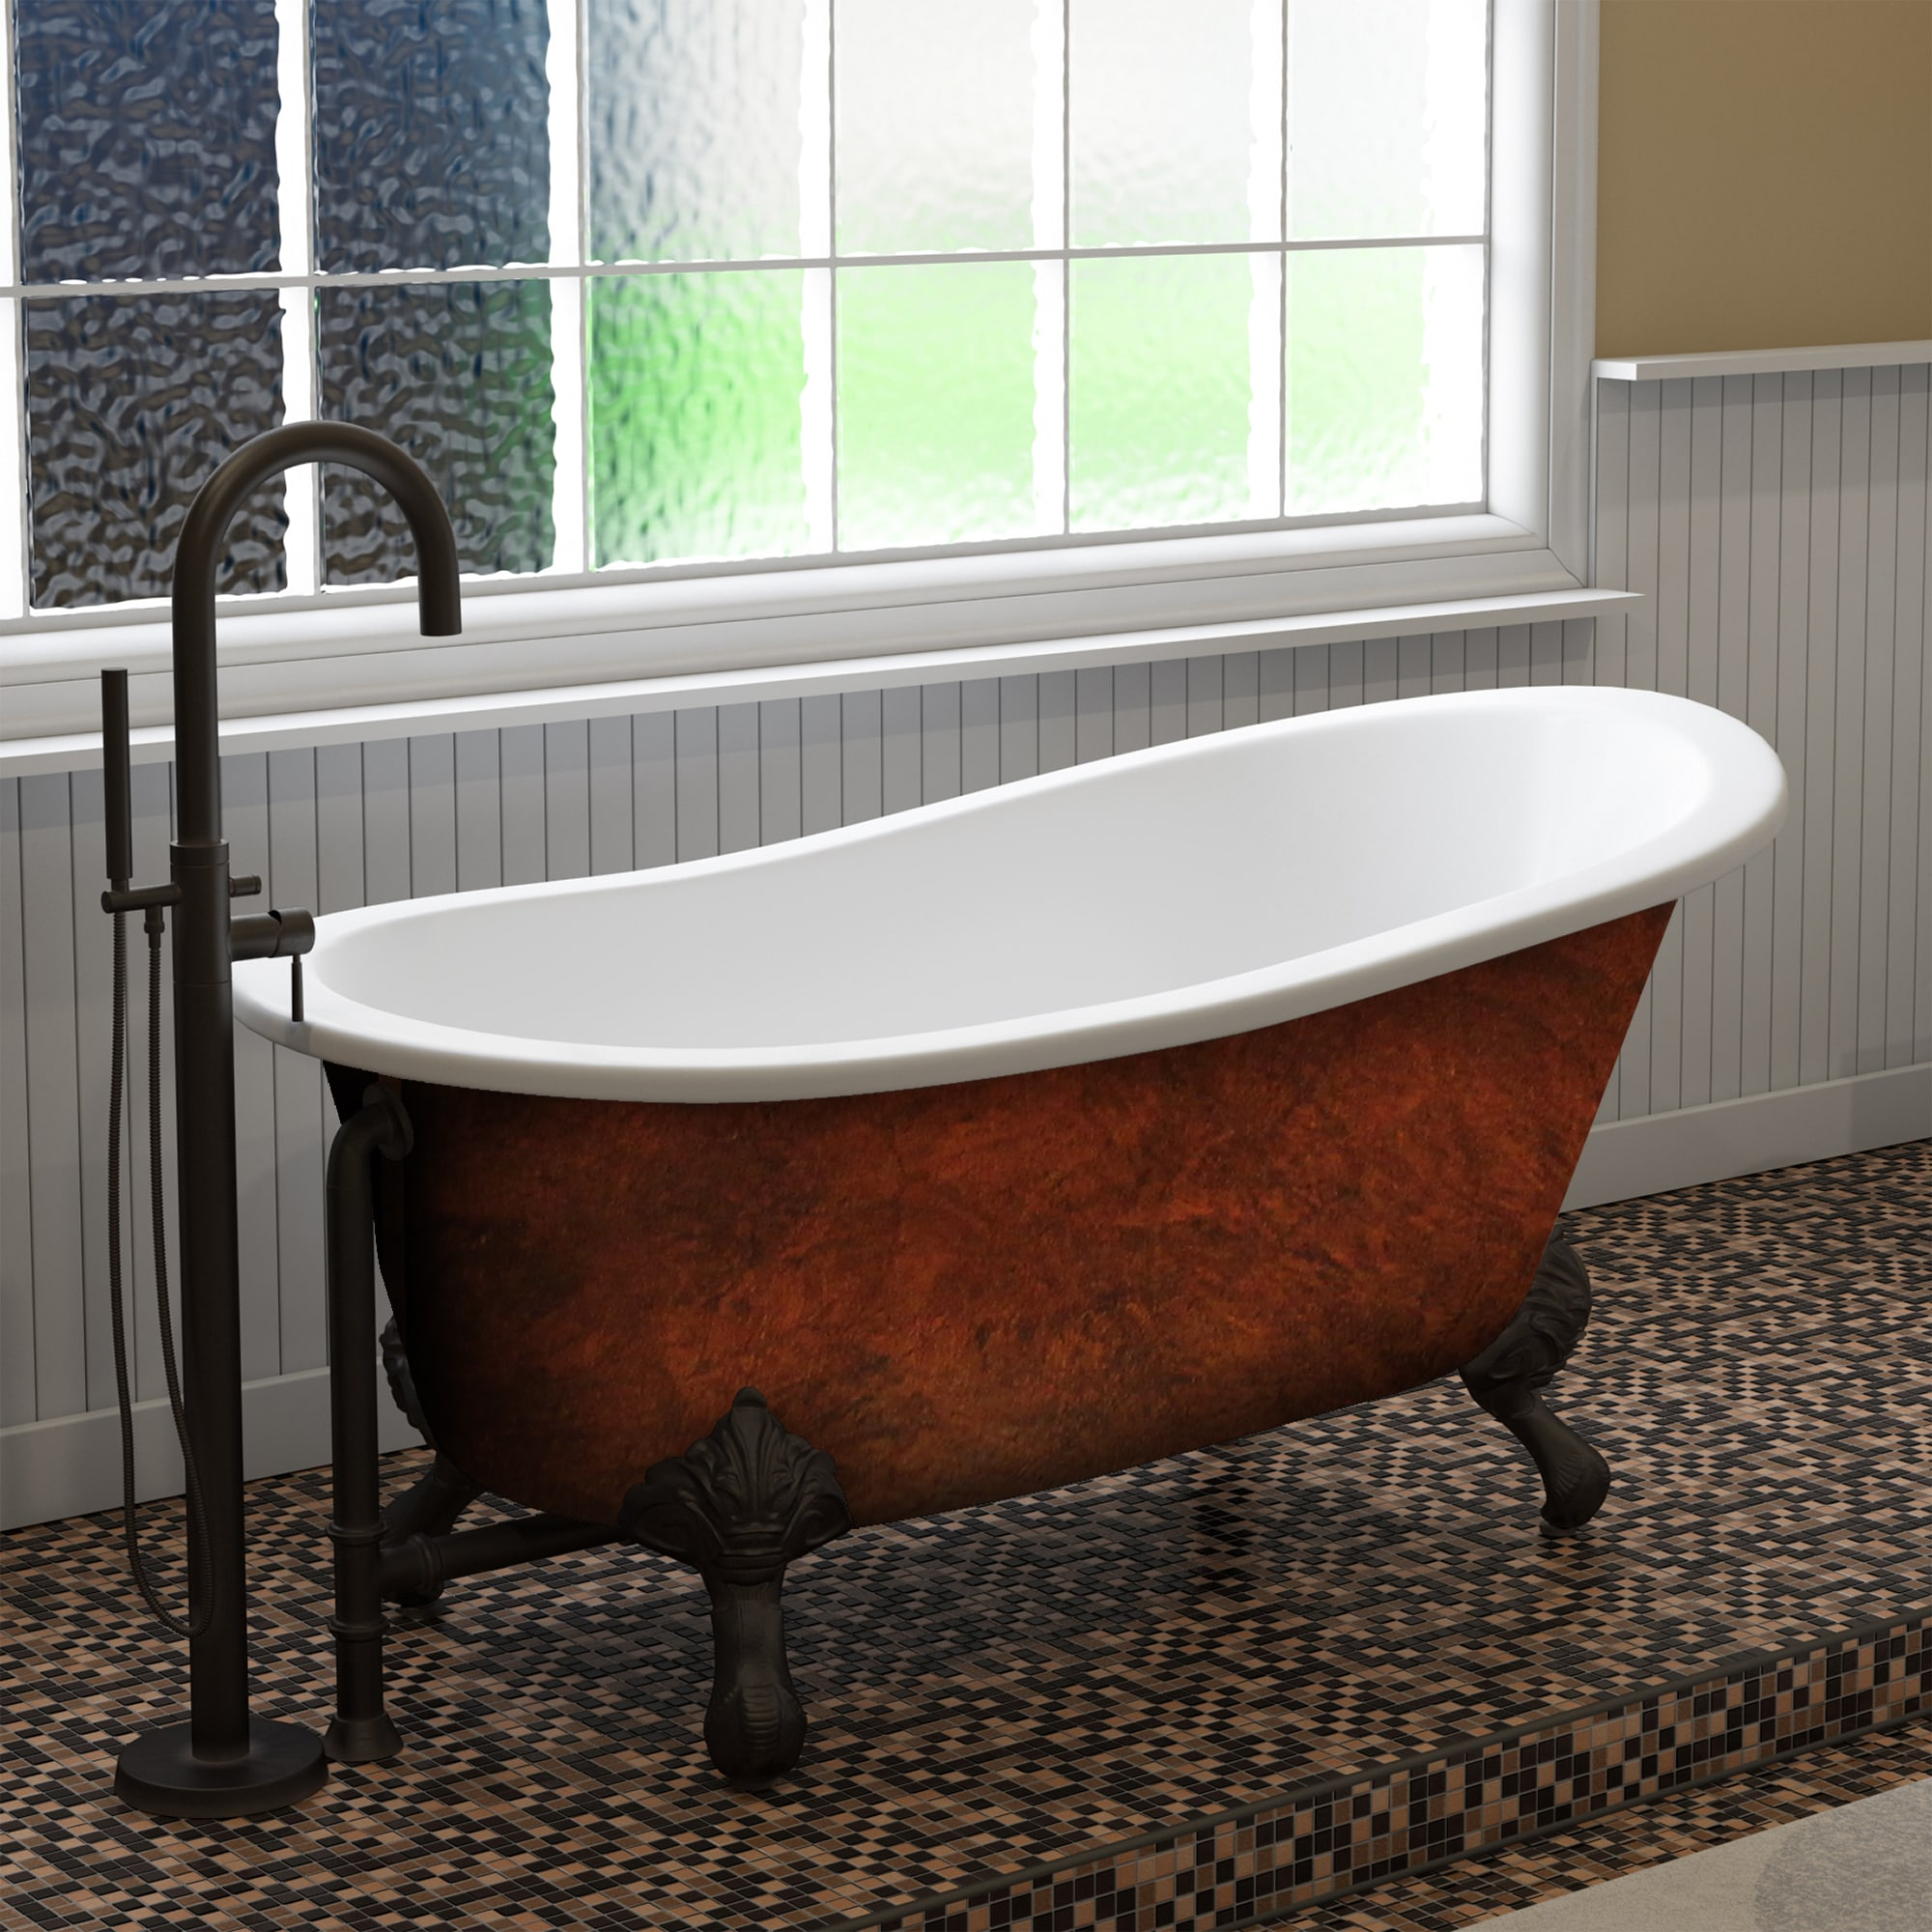 55 inch clawfoot tub. Cast Iron  Clawfoot Slipper Tub Copper Bronze Copper Bronze Clawfoot Tub Cast Iron Slipper No Holes